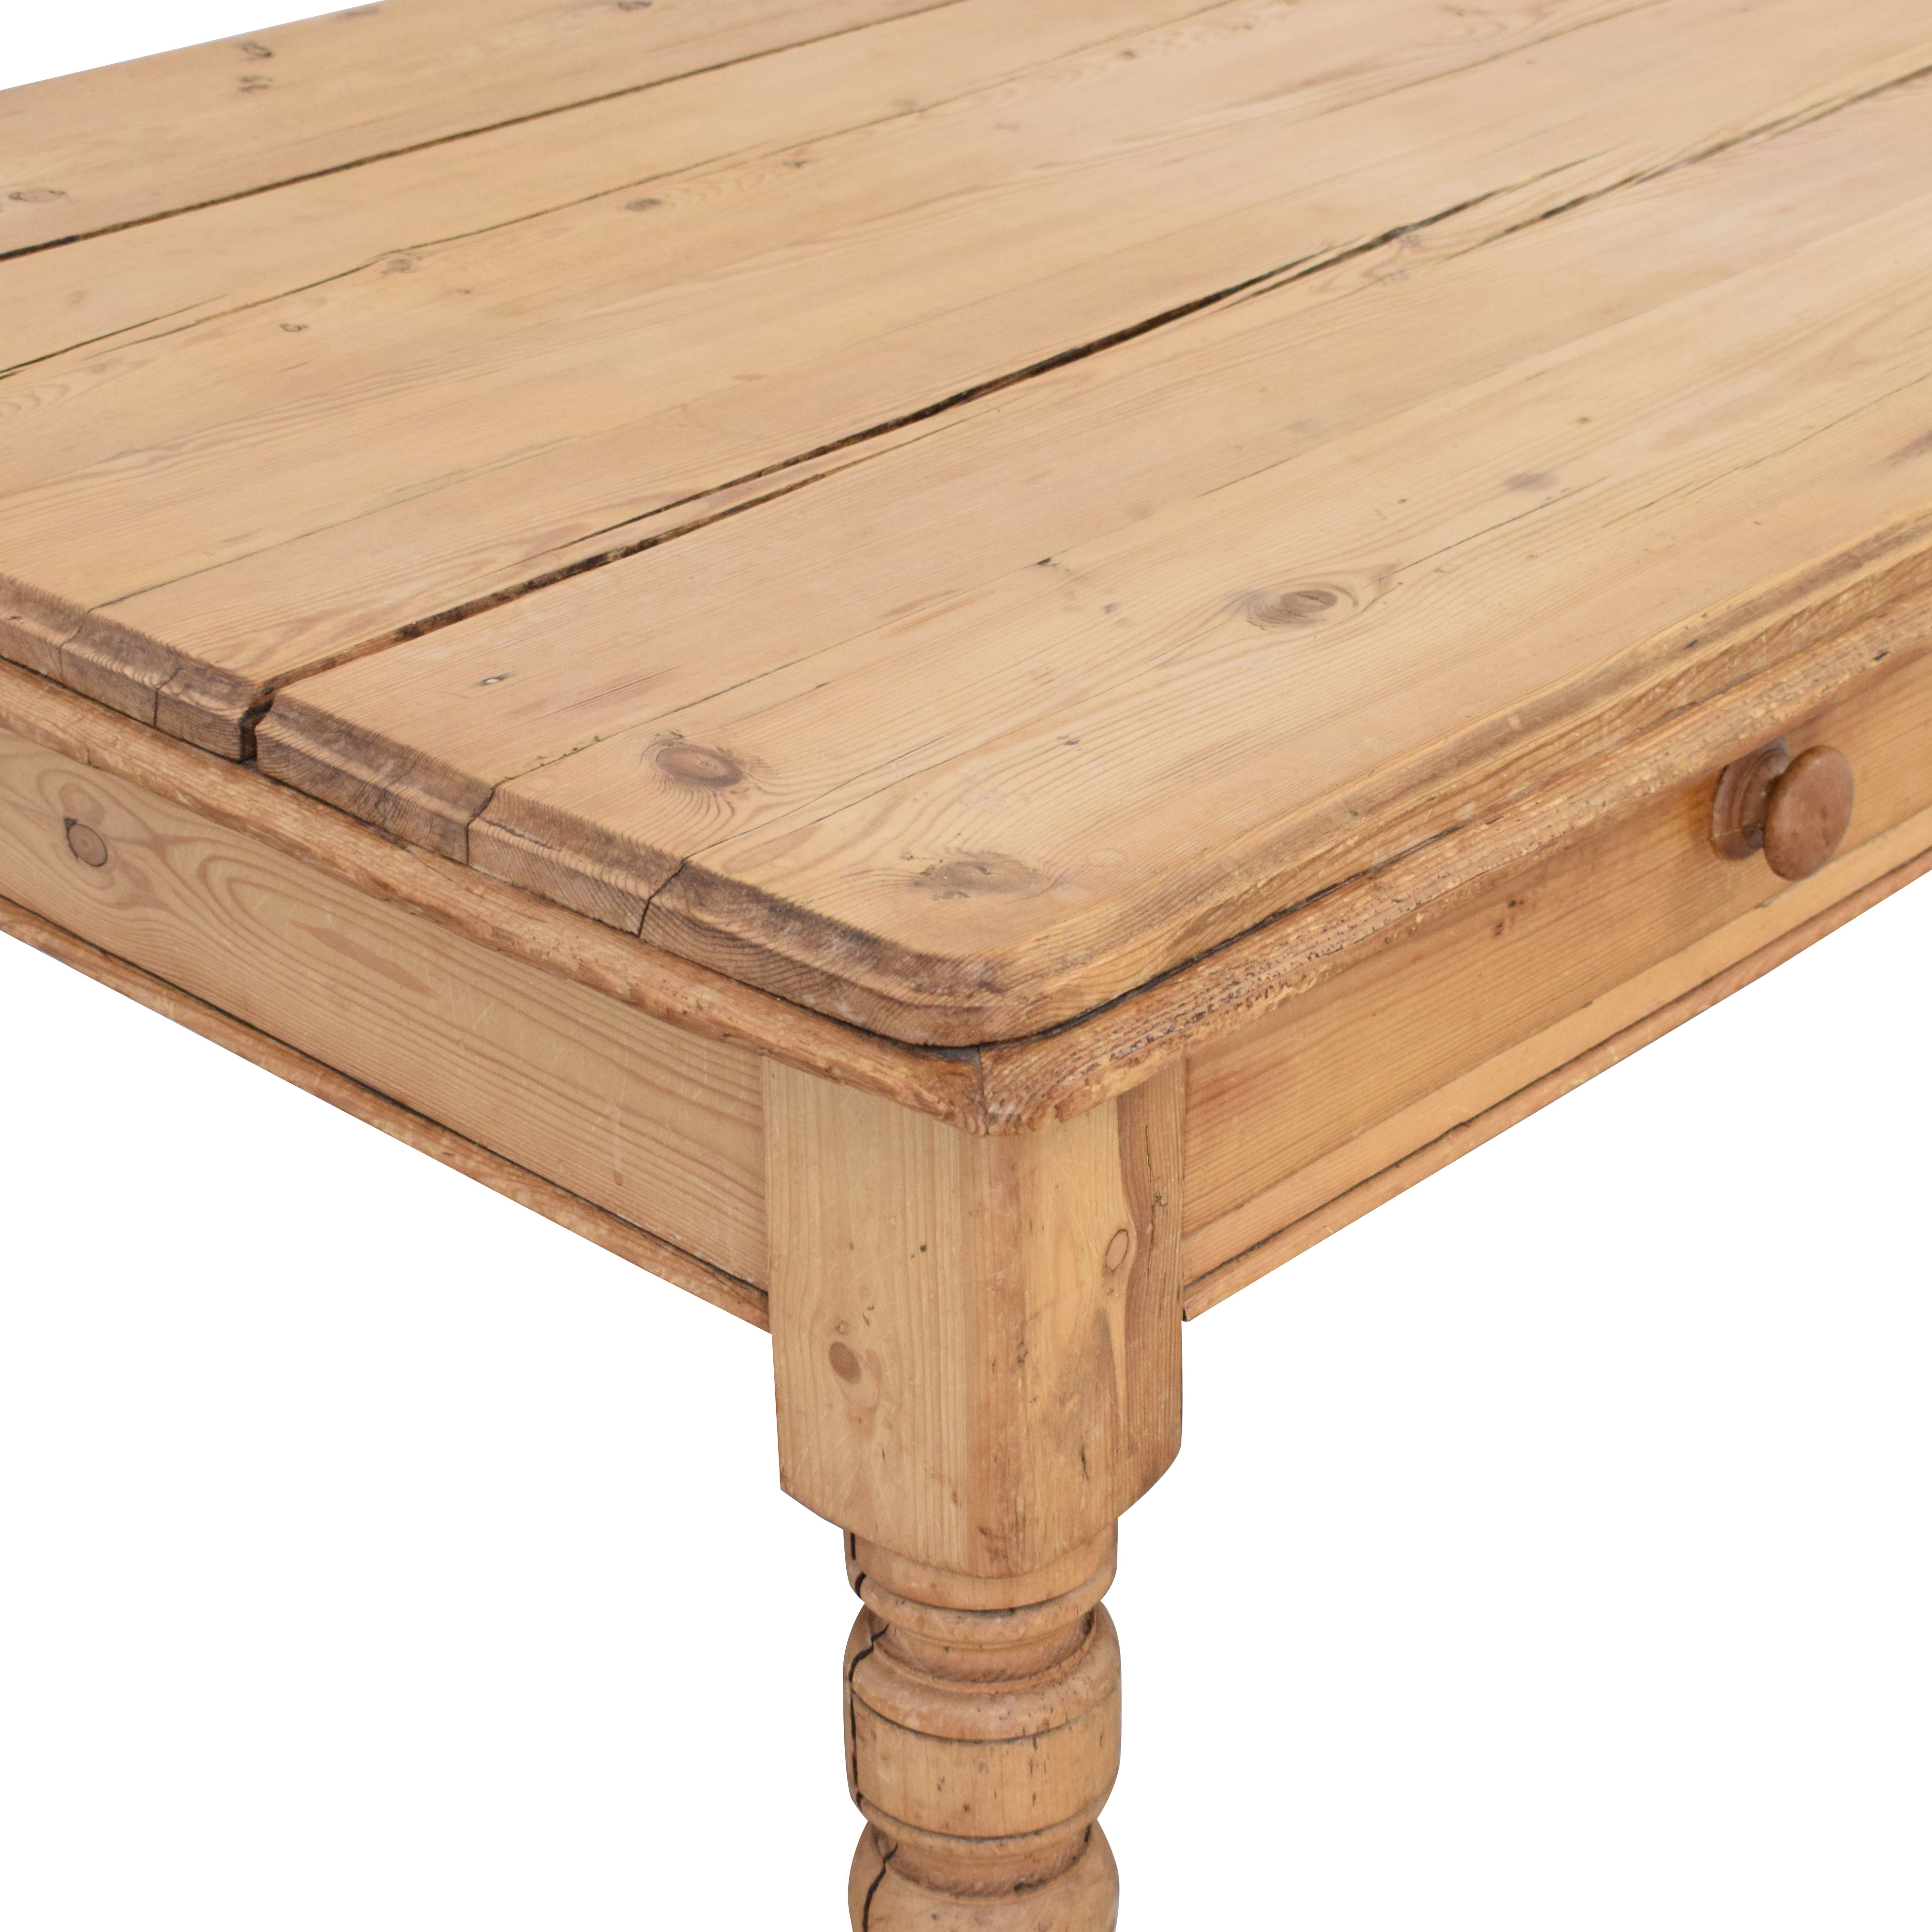 Rustic Wood Table coupon